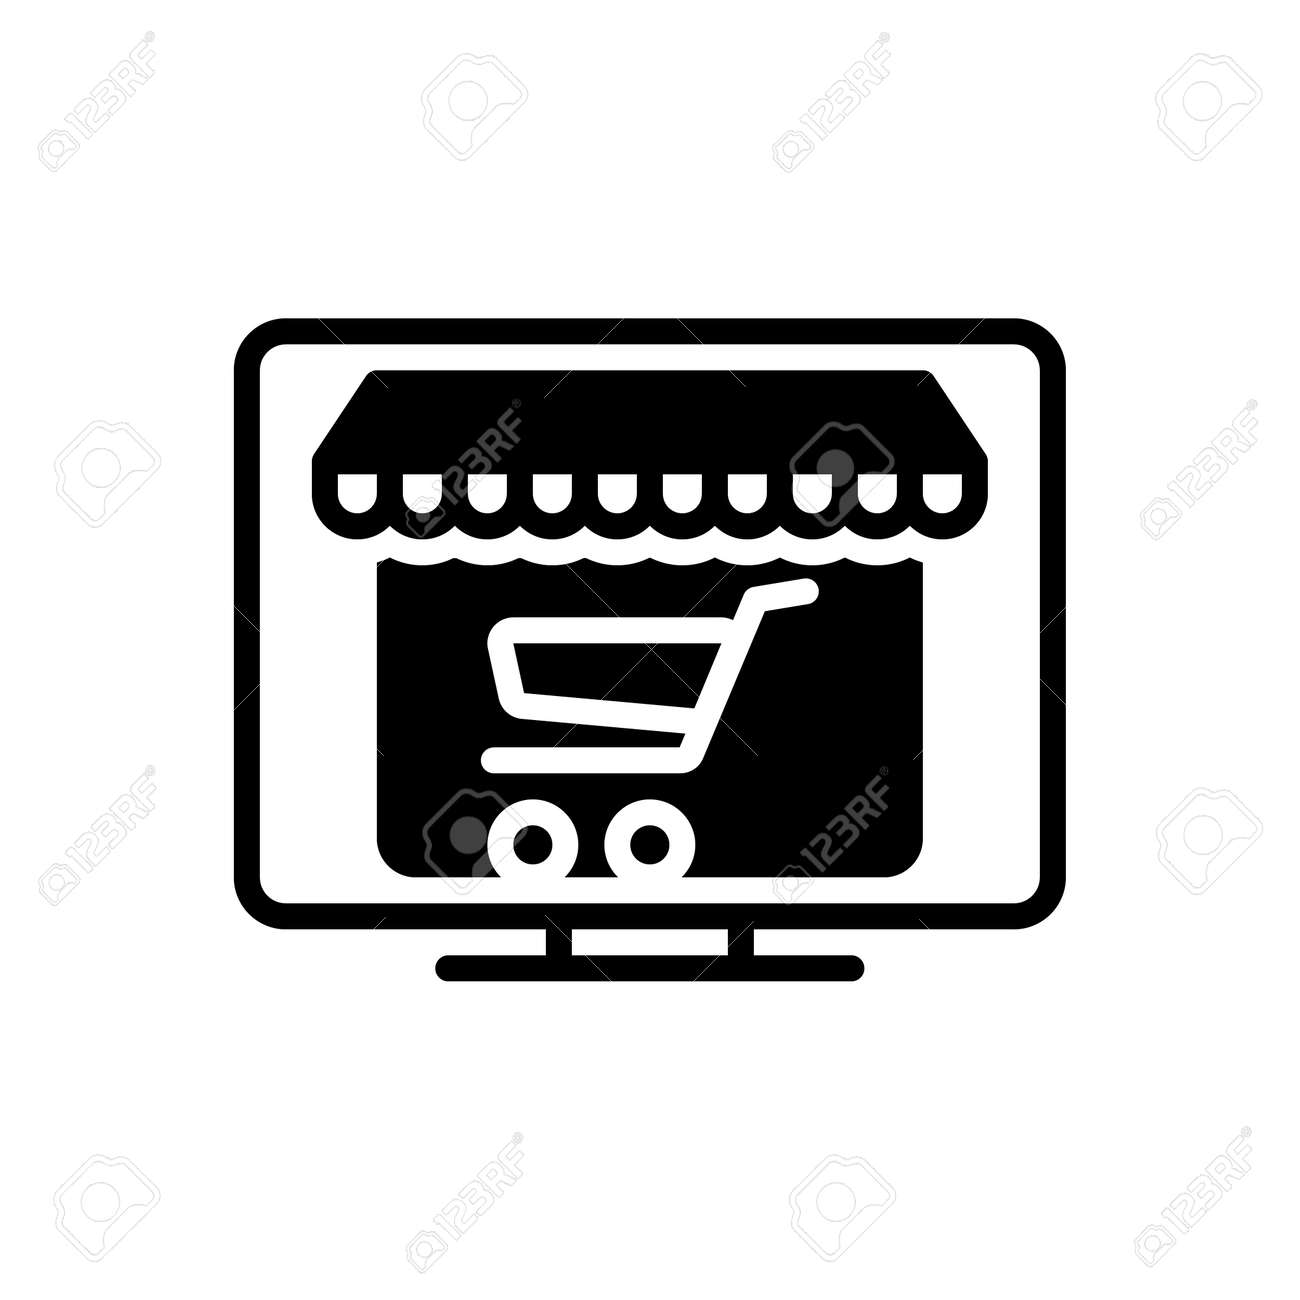 Icon for online shopping,internet - 172215030